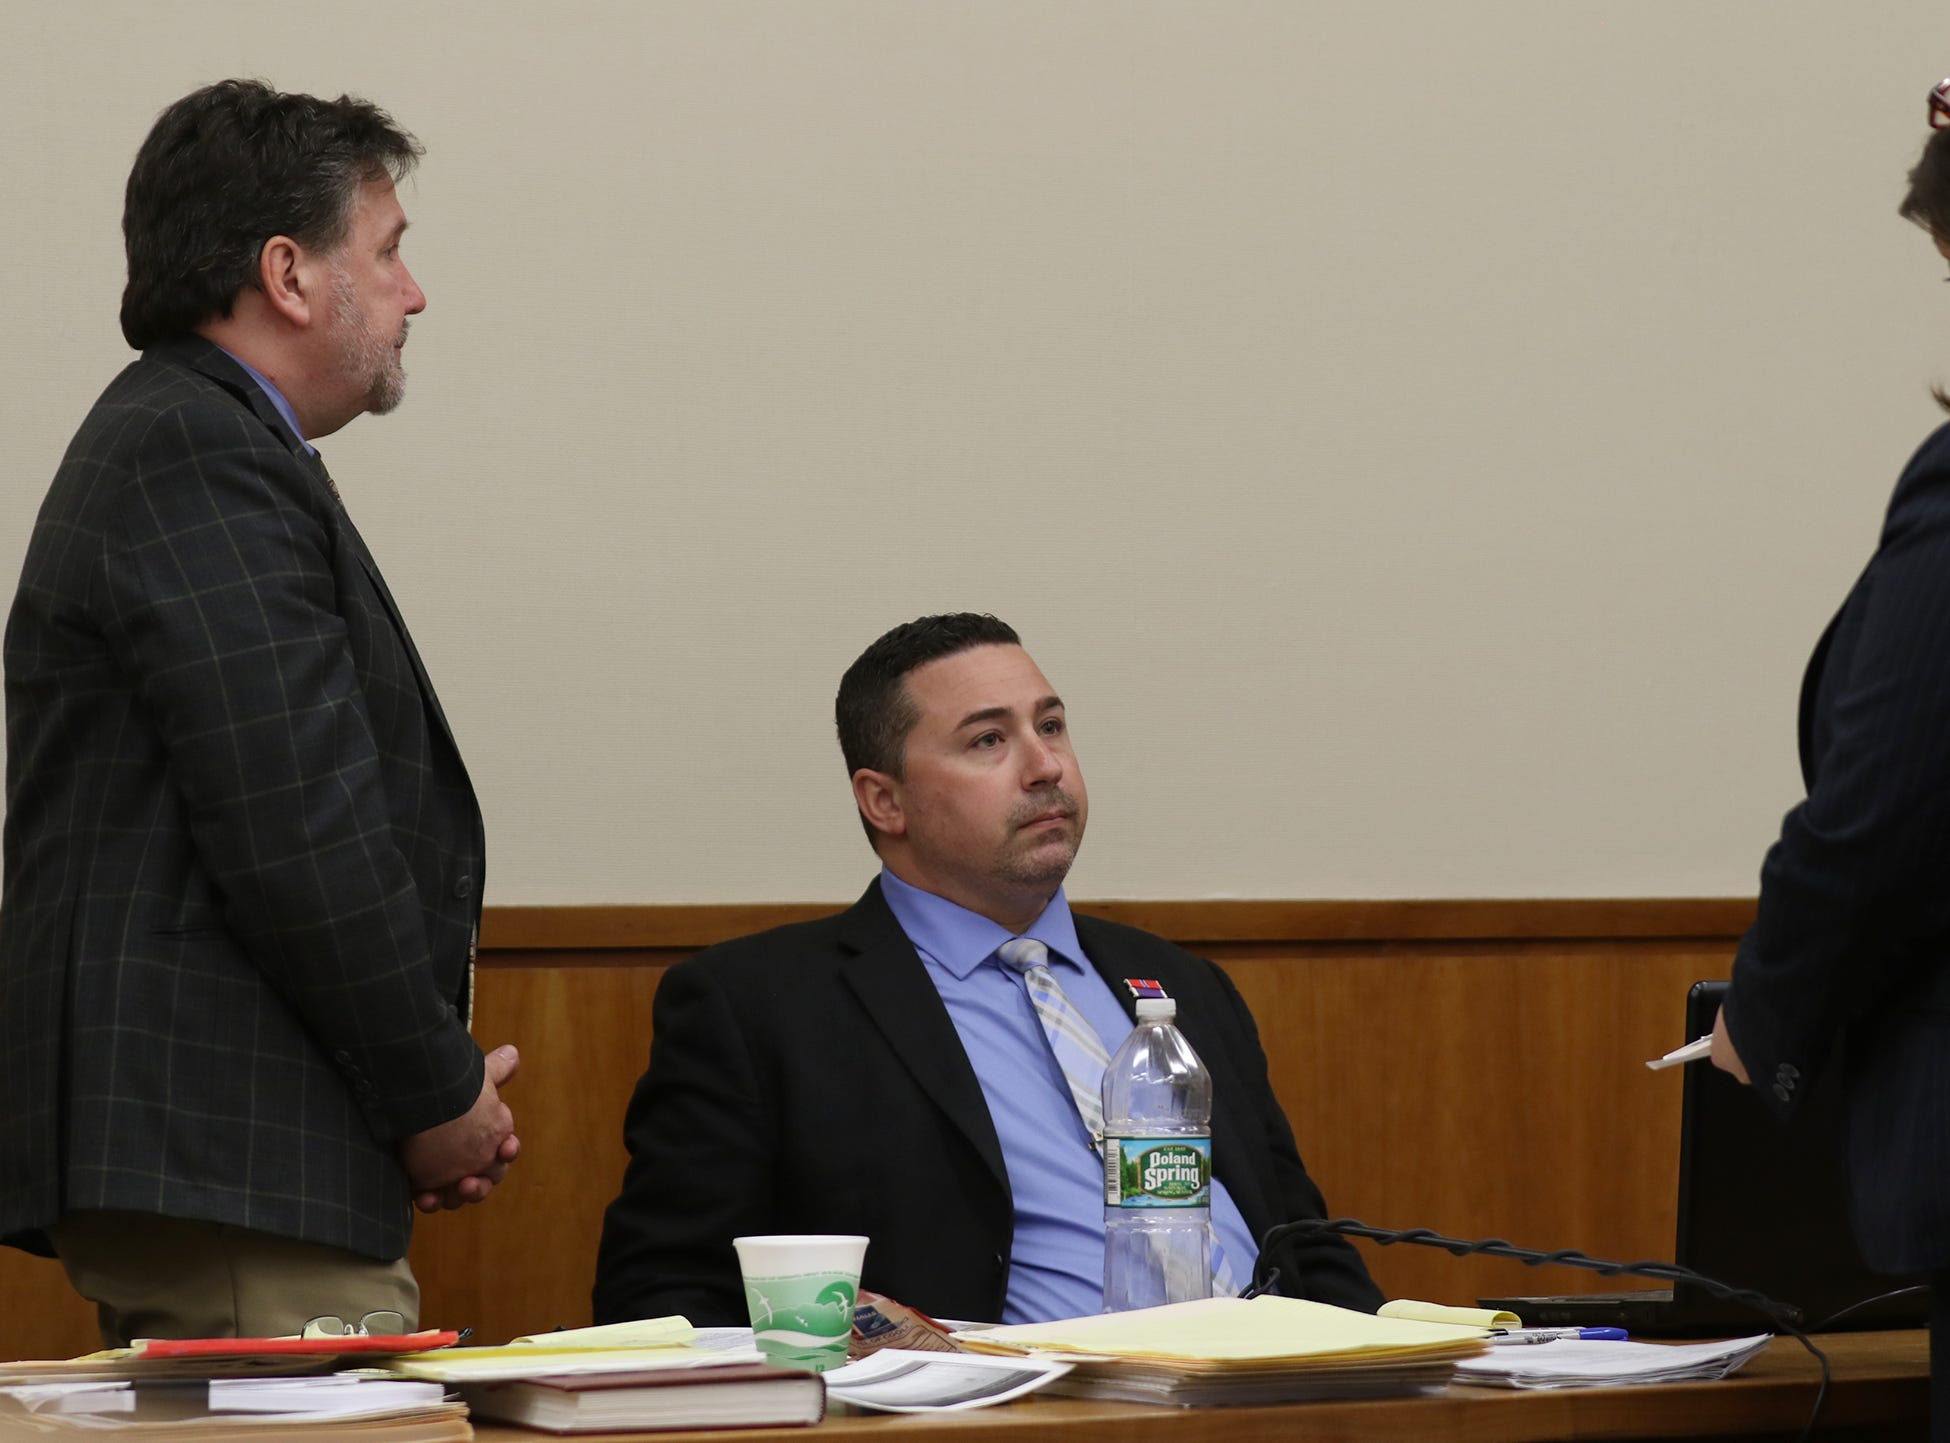 Rochester Police Officer Michael Sippel looks on as Monroe County District Attorney Gina Clark shows his defense attorney, Clark Zimmerman, a photo of a man that Christopher Pate was mistaken for.  Zimmermann had just objected to the use of the photo that Clark tried to introduce.